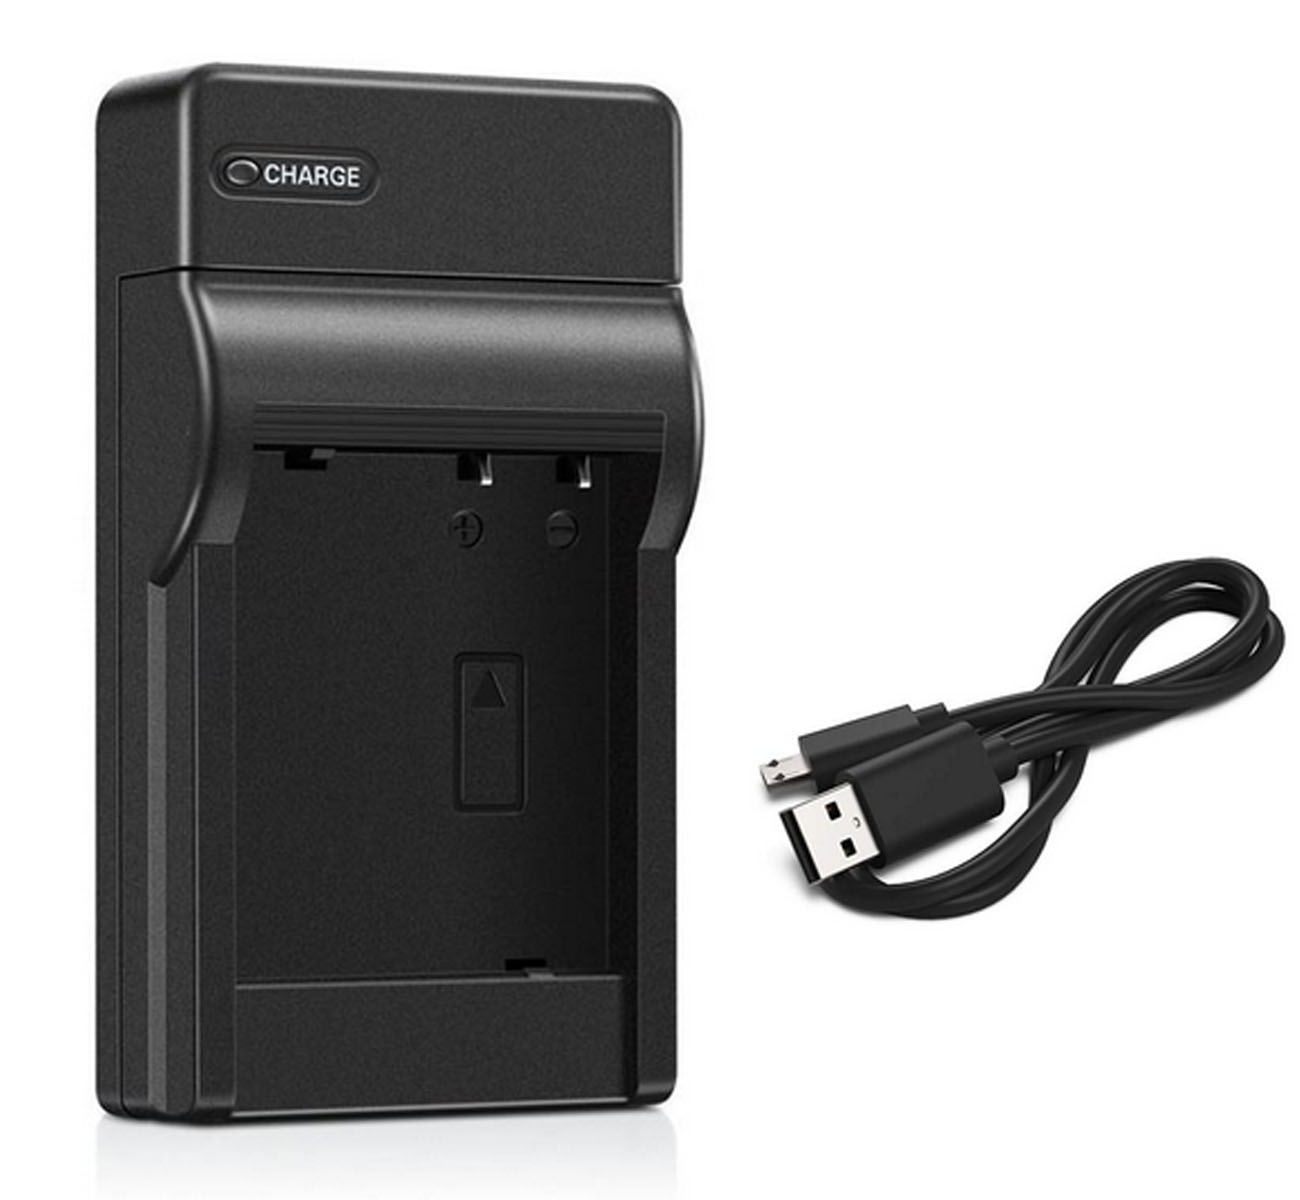 Battery Charger for <font><b>Canon</b></font> <font><b>PowerShot</b></font> SX400, <font><b>SX410</b></font>, SX420, SX430 <font><b>IS</b></font>, ELPH 180, ELPH 190 <font><b>IS</b></font>, IXUS 285 HS Digital Camera image